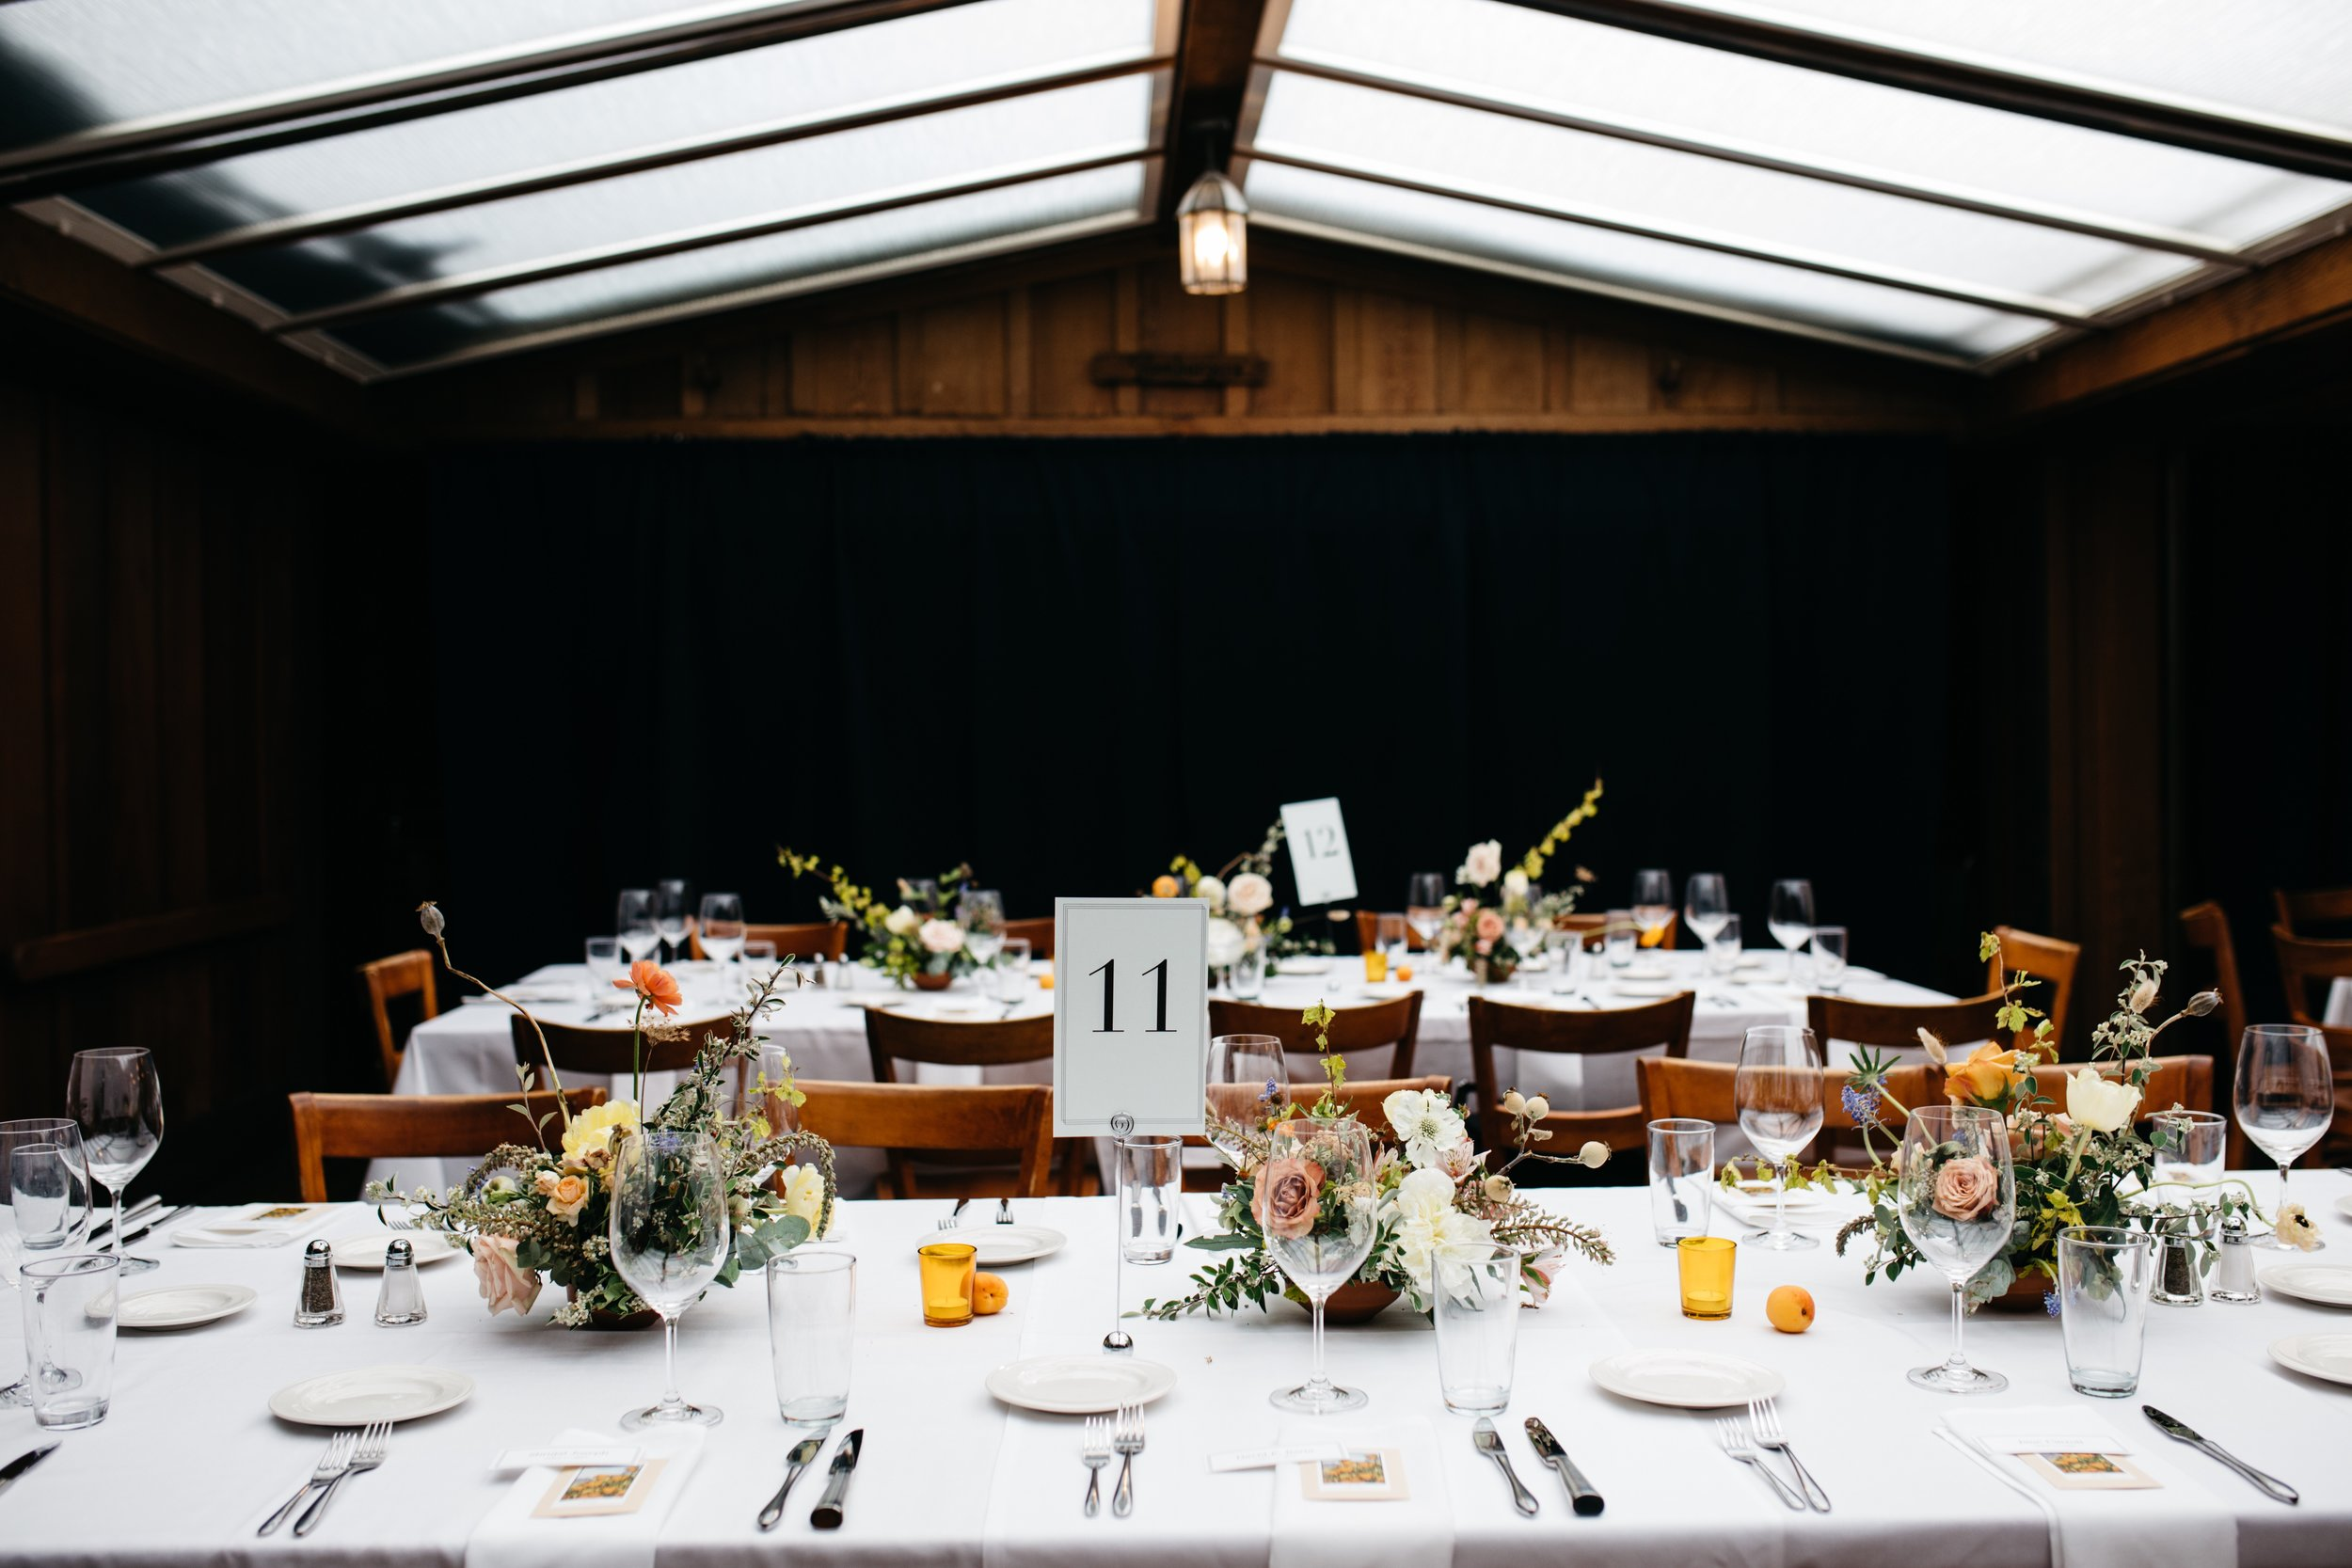 Family Style Food + Tons of Tiny Table Arrangements Wedding Tips From Ash + Oak San Francisco's top wedding florist San Francisco Top wedding florist ASH + OAK